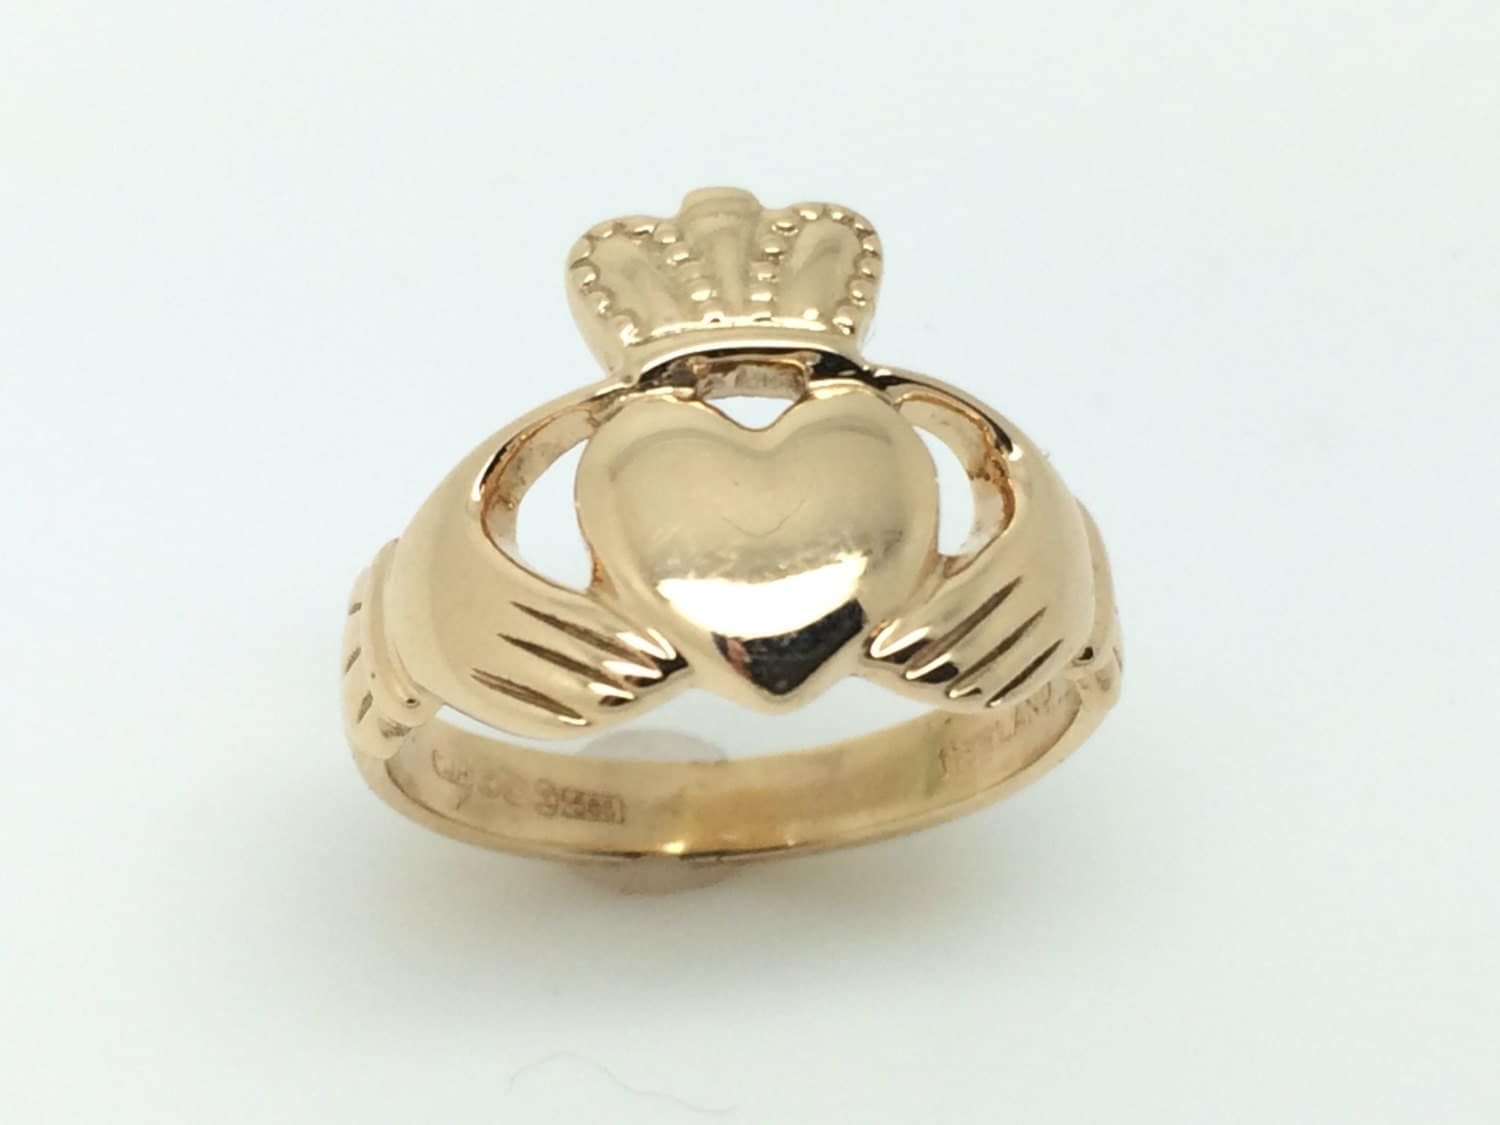 Made In Ireland Authentic Irish Claddagh Ring 14k Yellow